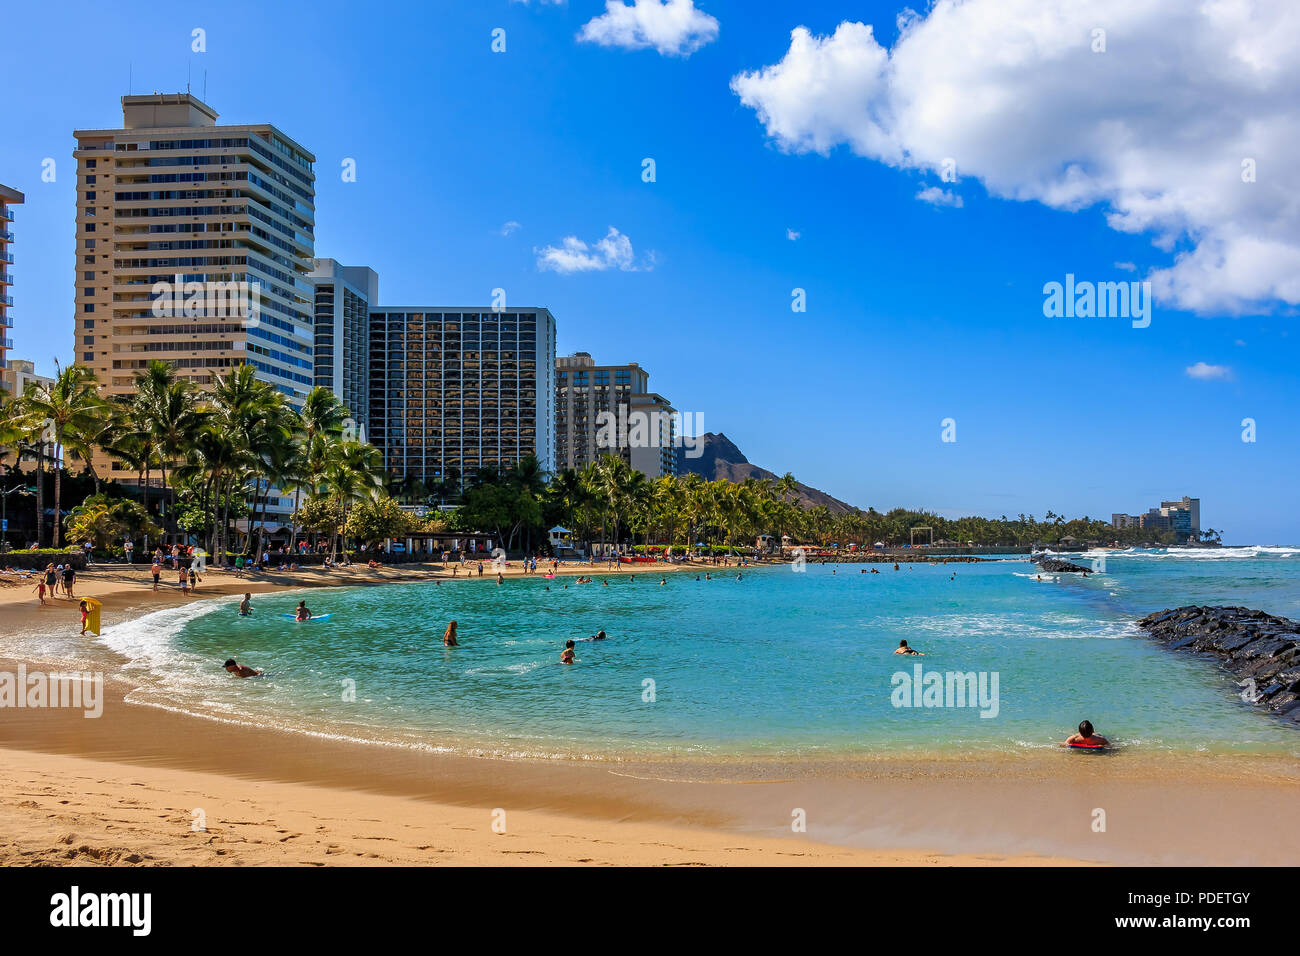 Día vista a la playa de Waikiki y Diamond Head en Honolulu en Hawaii, EE.UU. Imagen De Stock